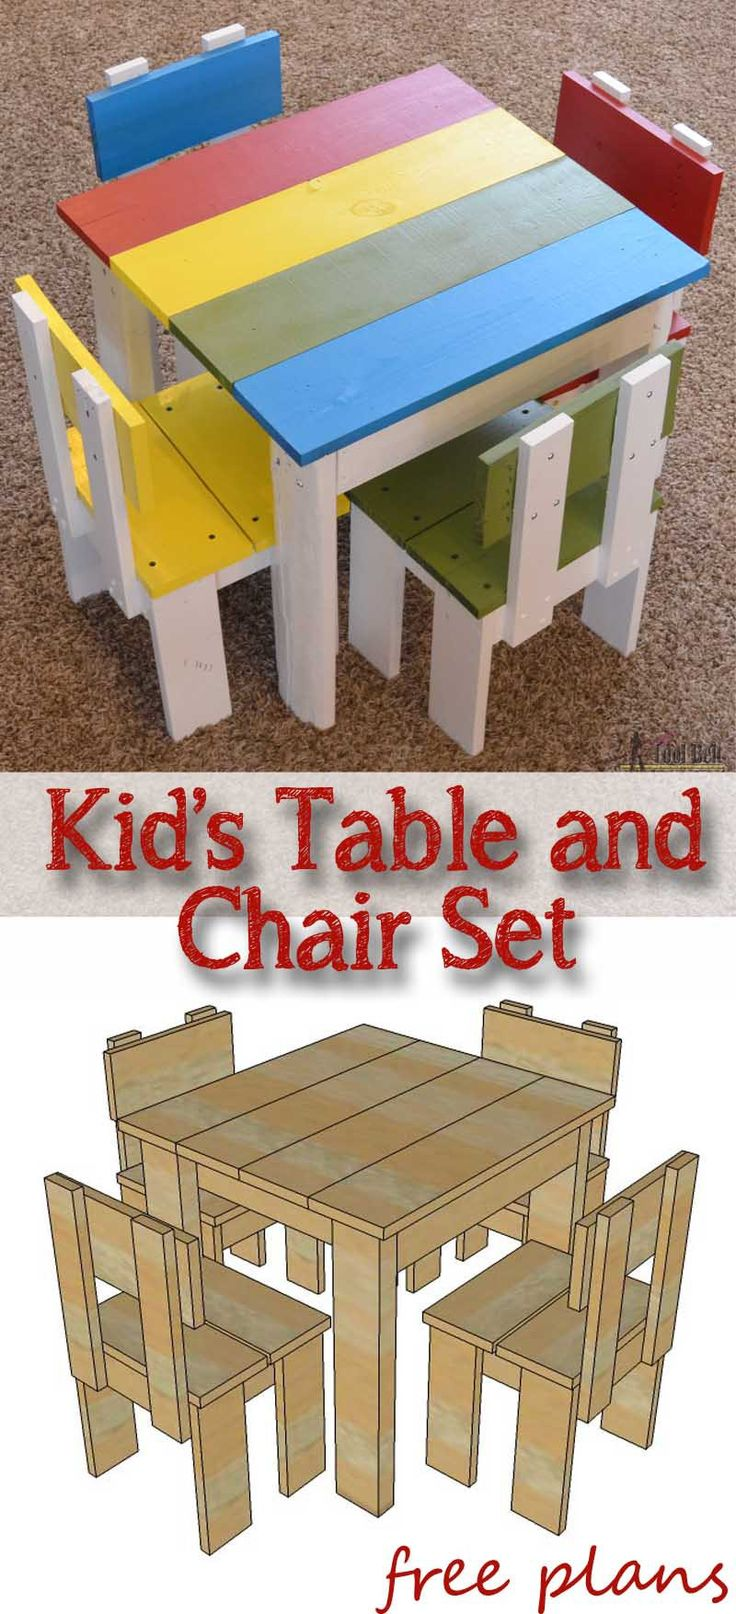 best  kids table and chairs ideas on pinterest  natalia wood  - simple kid's table and chair set